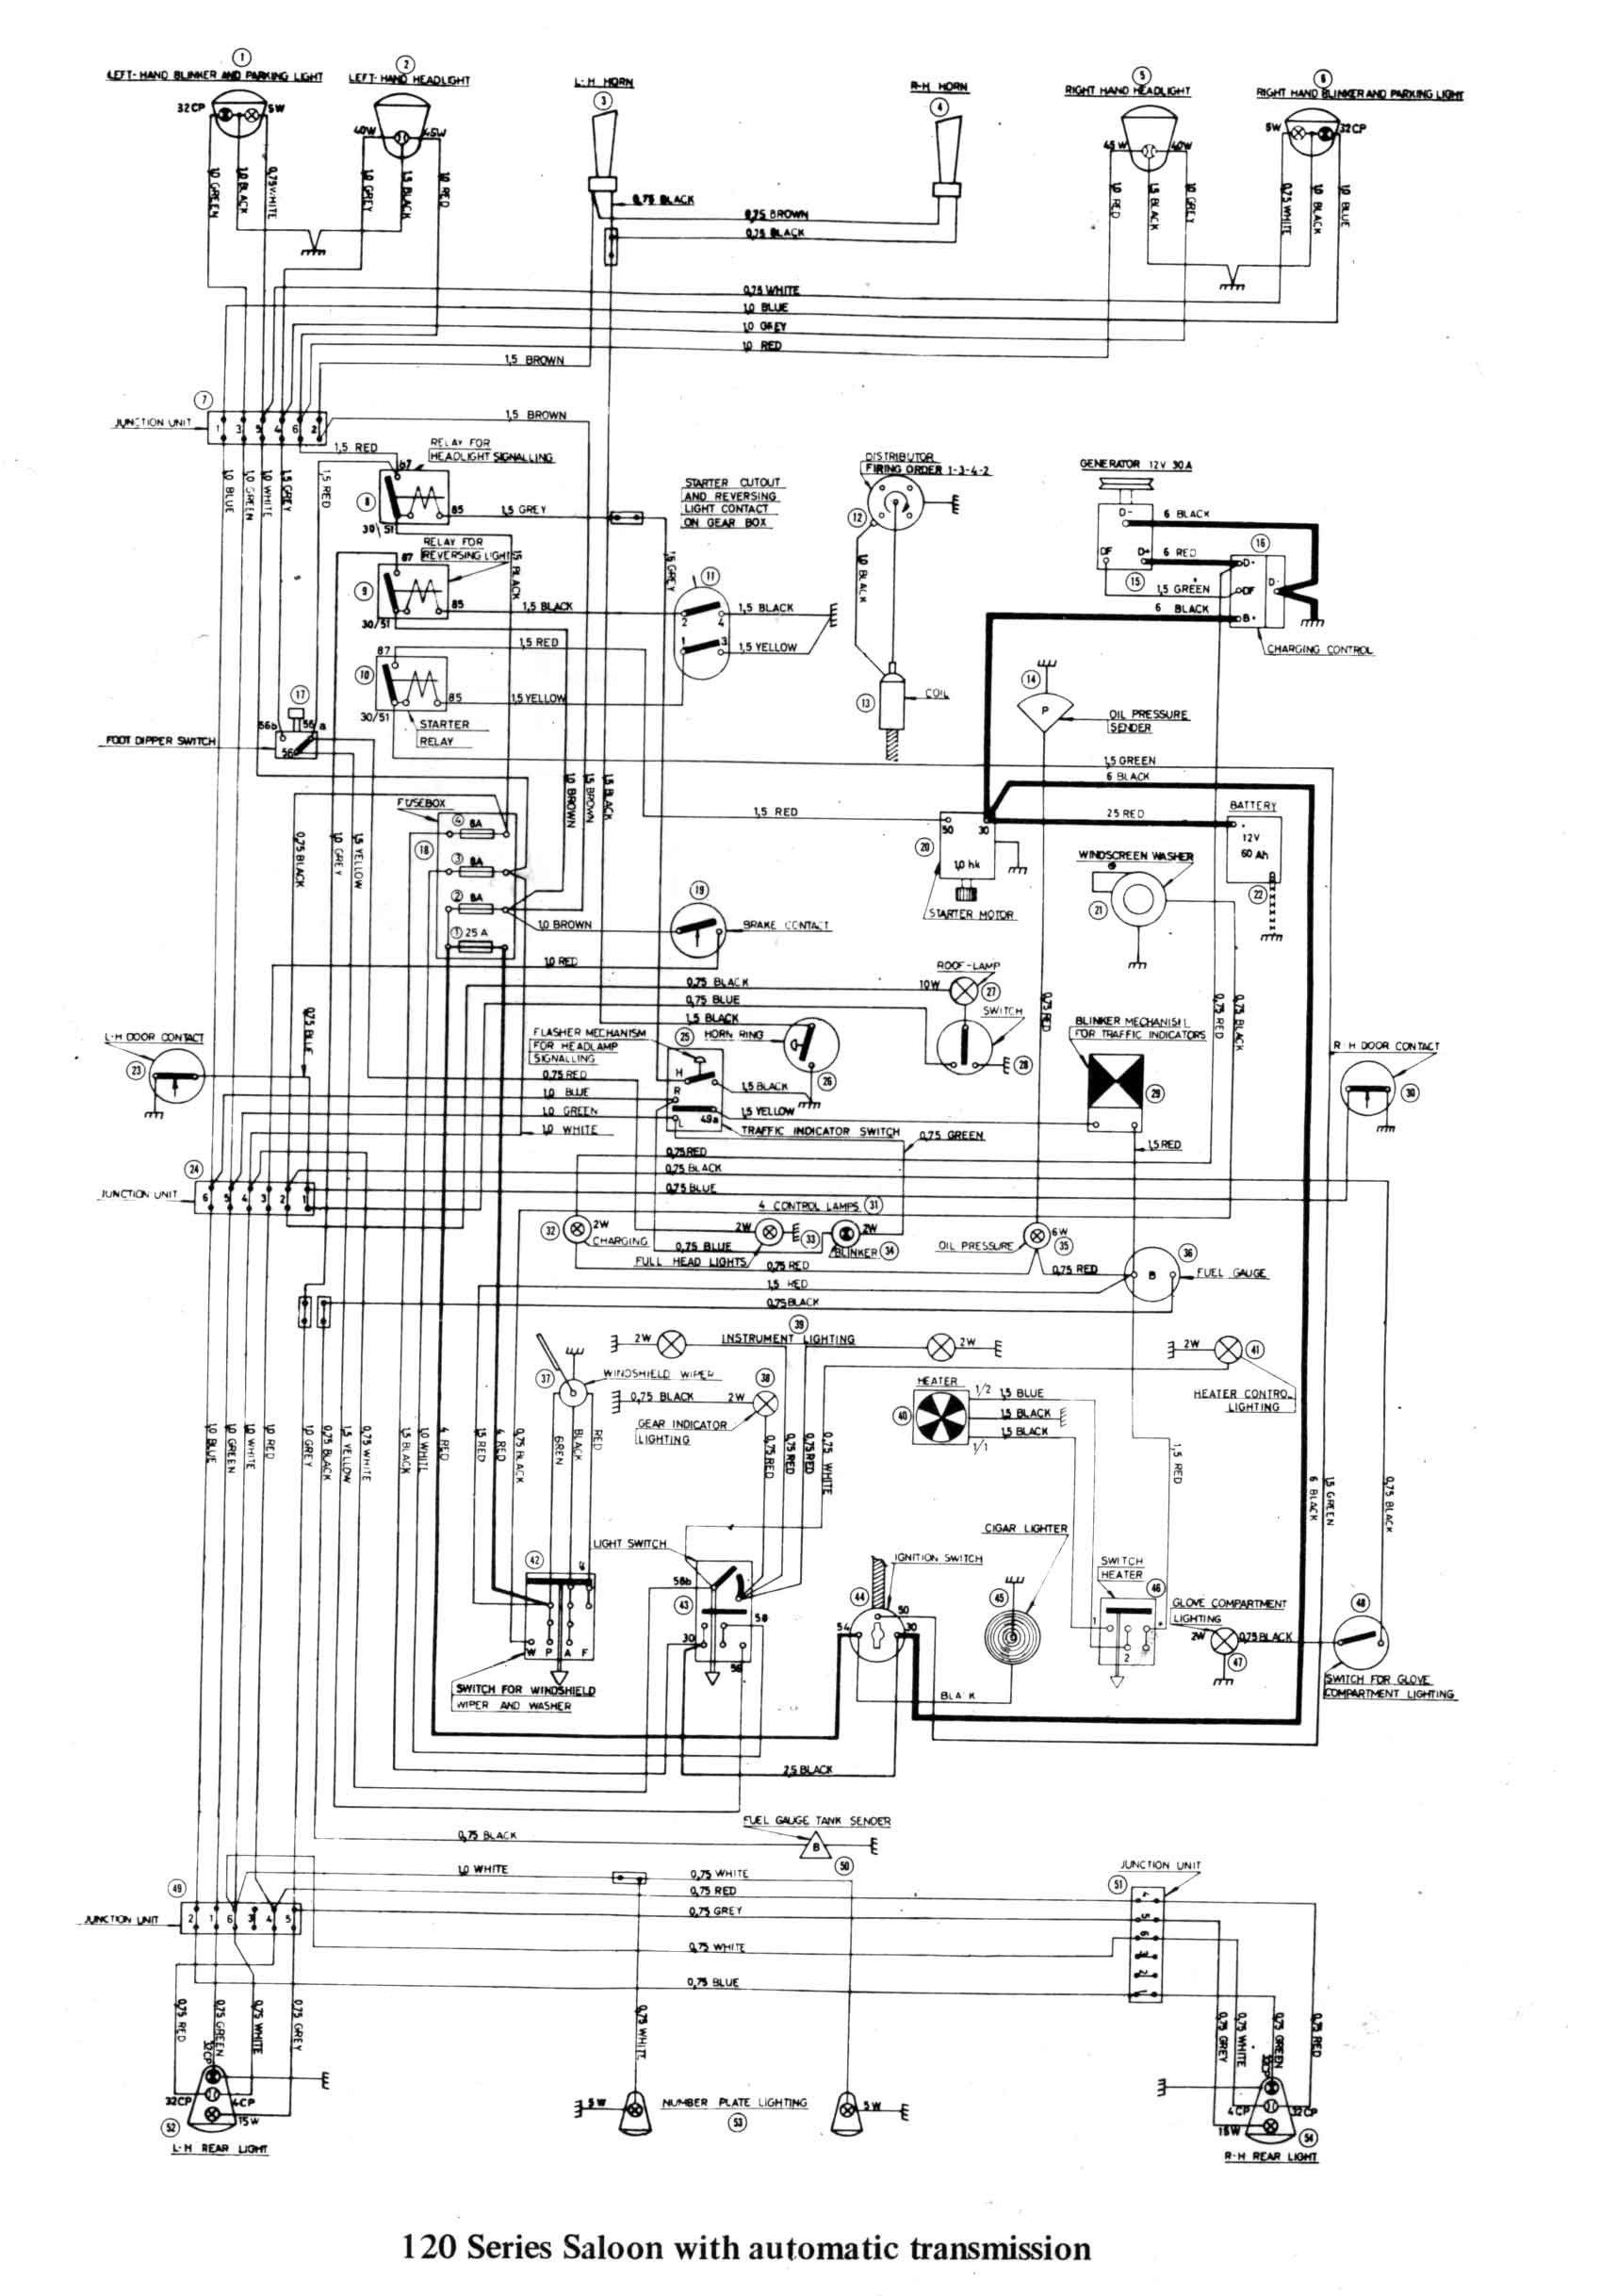 Car Alternator Wiring Diagram Unique In 2020 Electrical Wiring Diagram Trailer Wiring Diagram Diagram